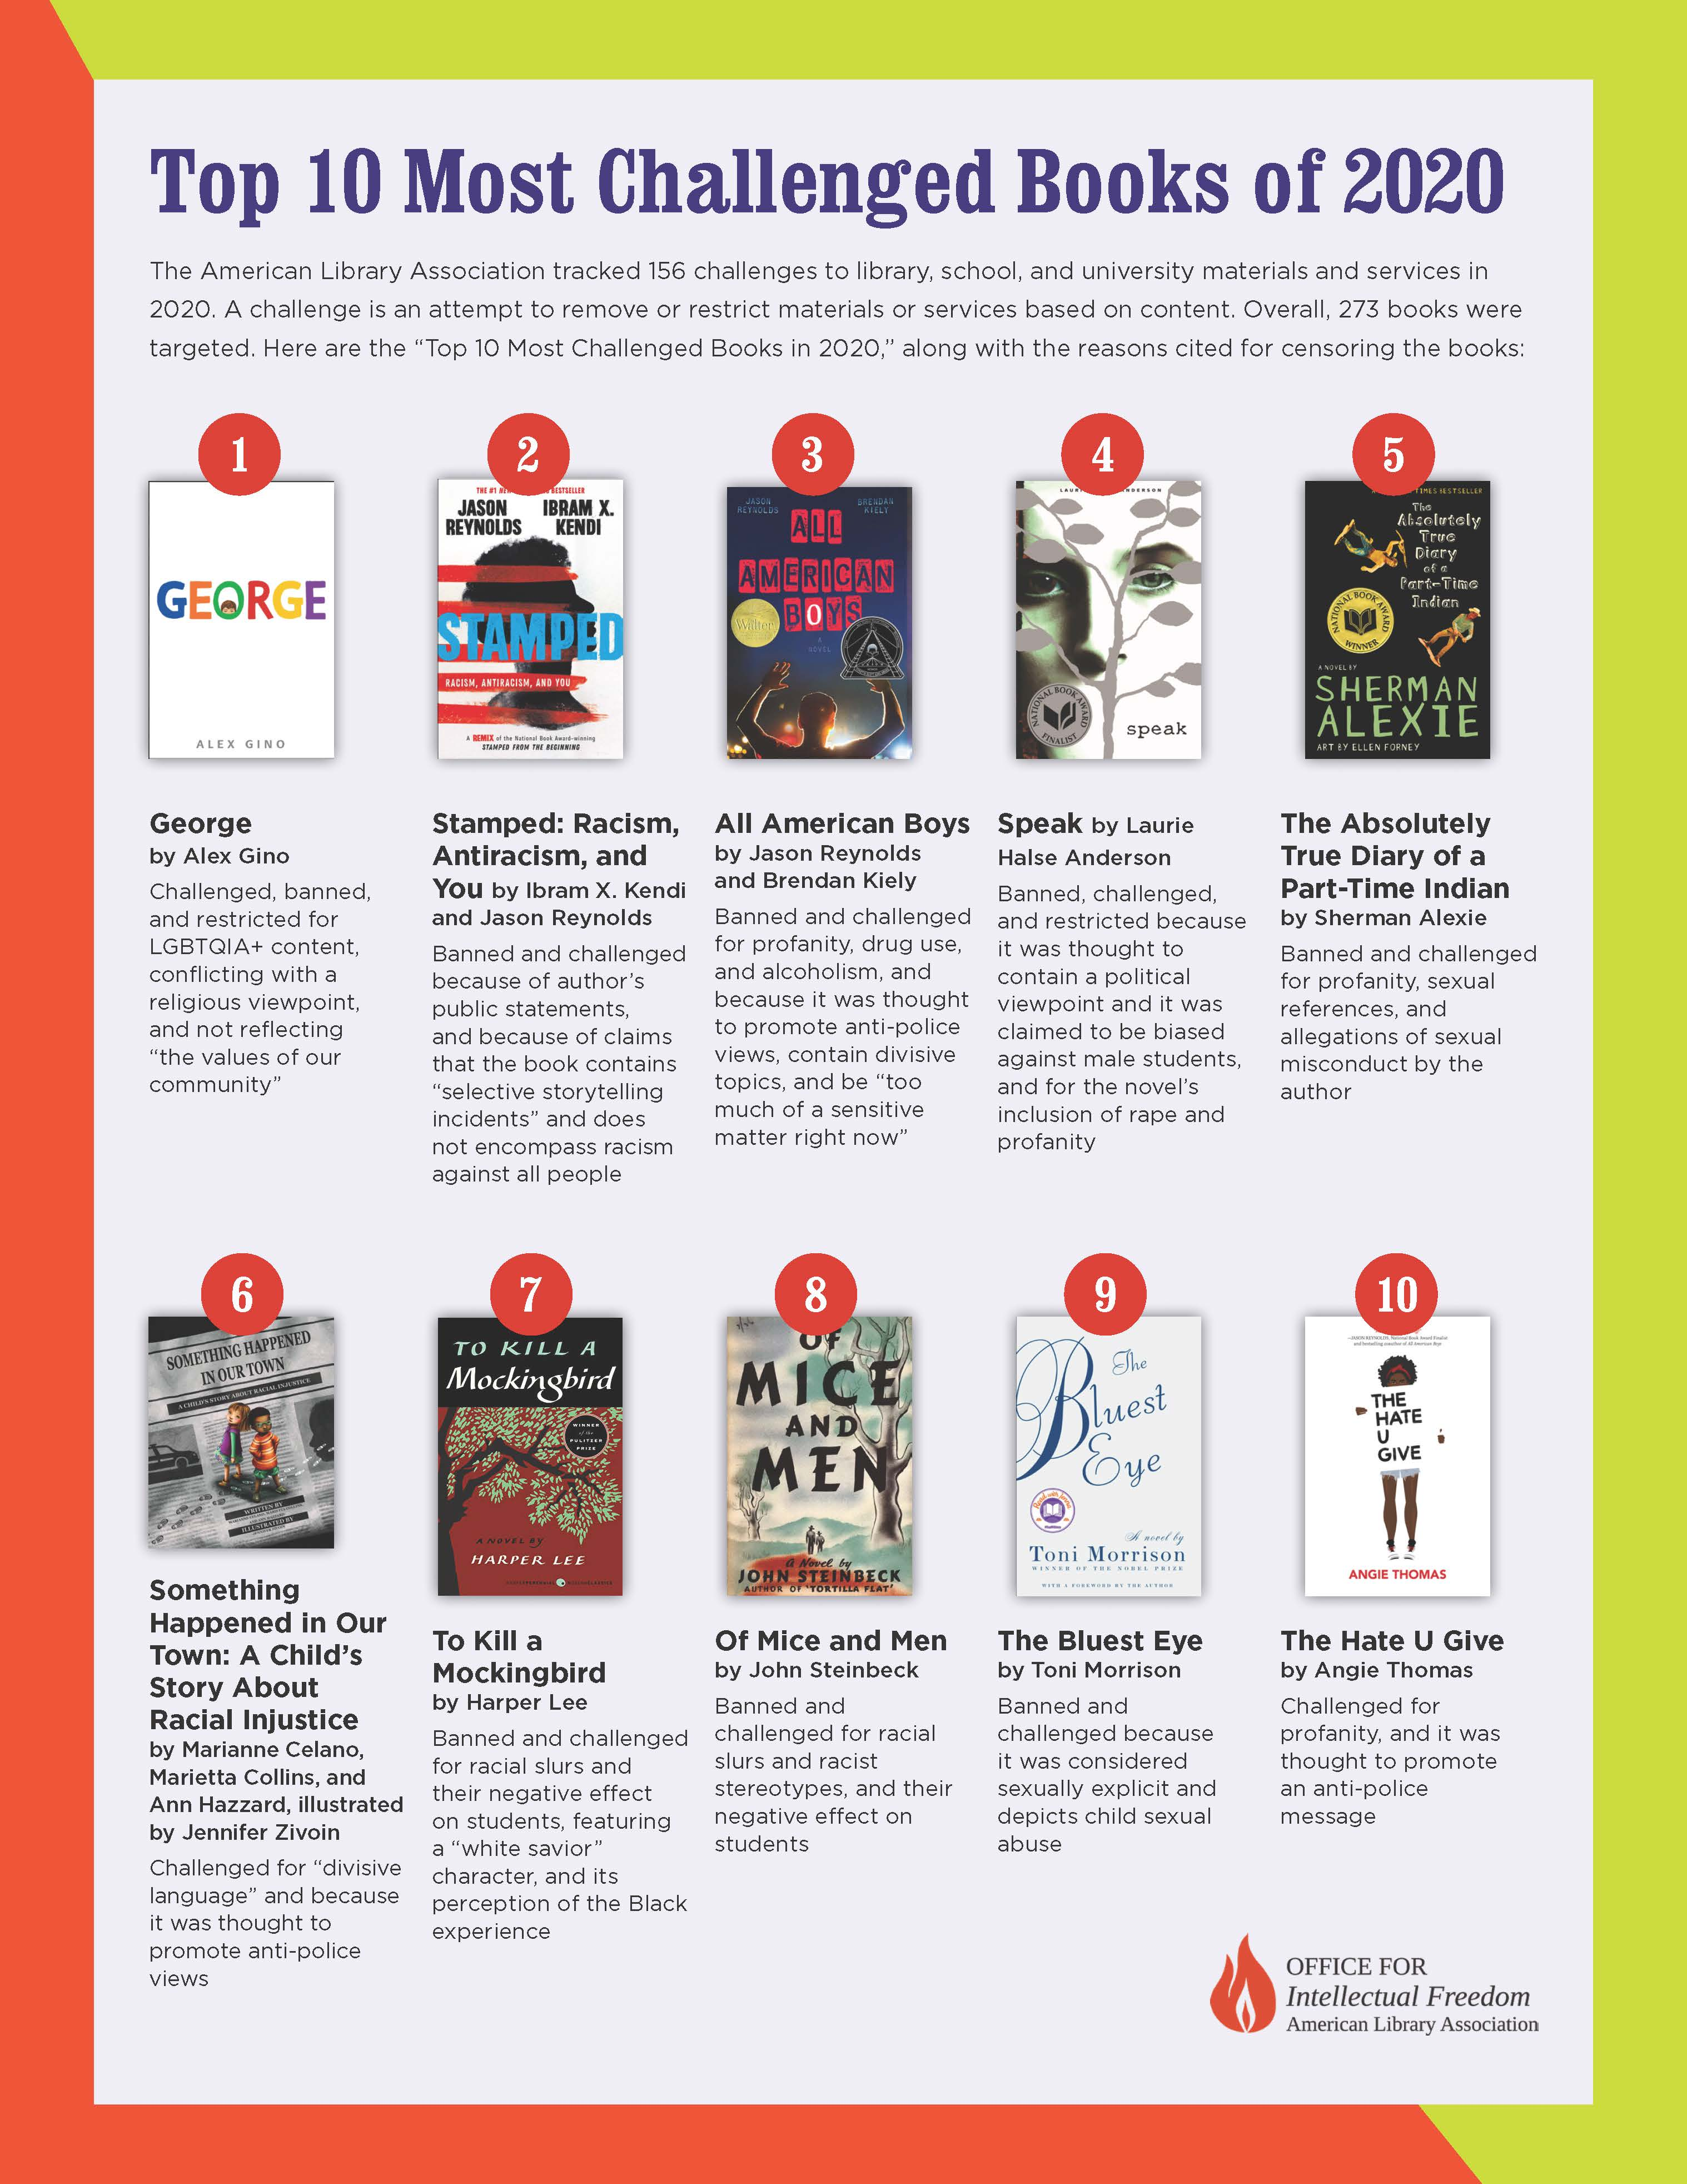 Banned Books Infographic showing top 10 challenged titles of 2020